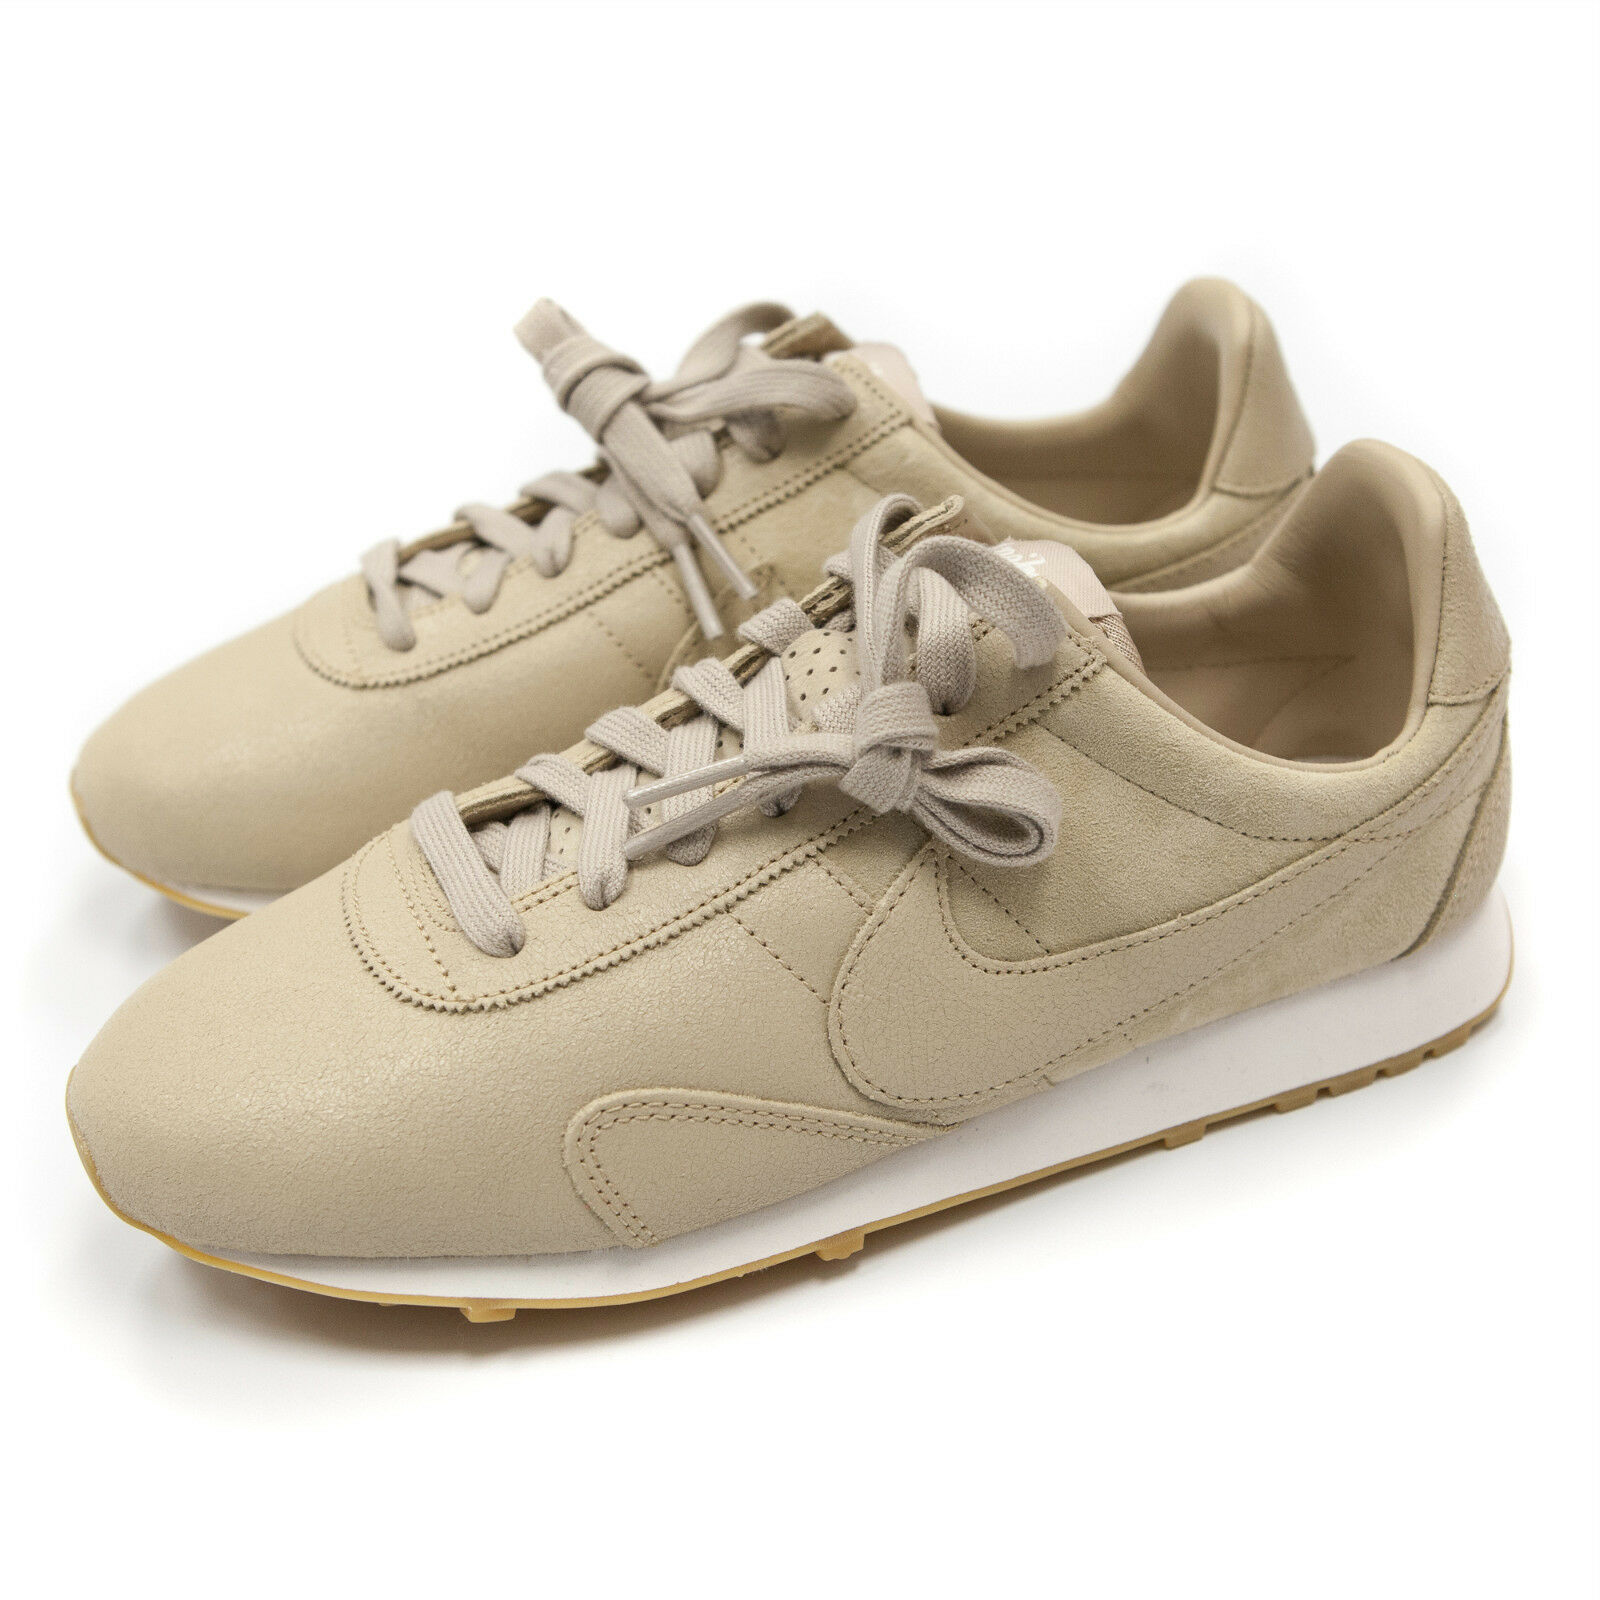 Nike Pre Montreal Racer Pinnacle Women's Shoes MSRP    Beige